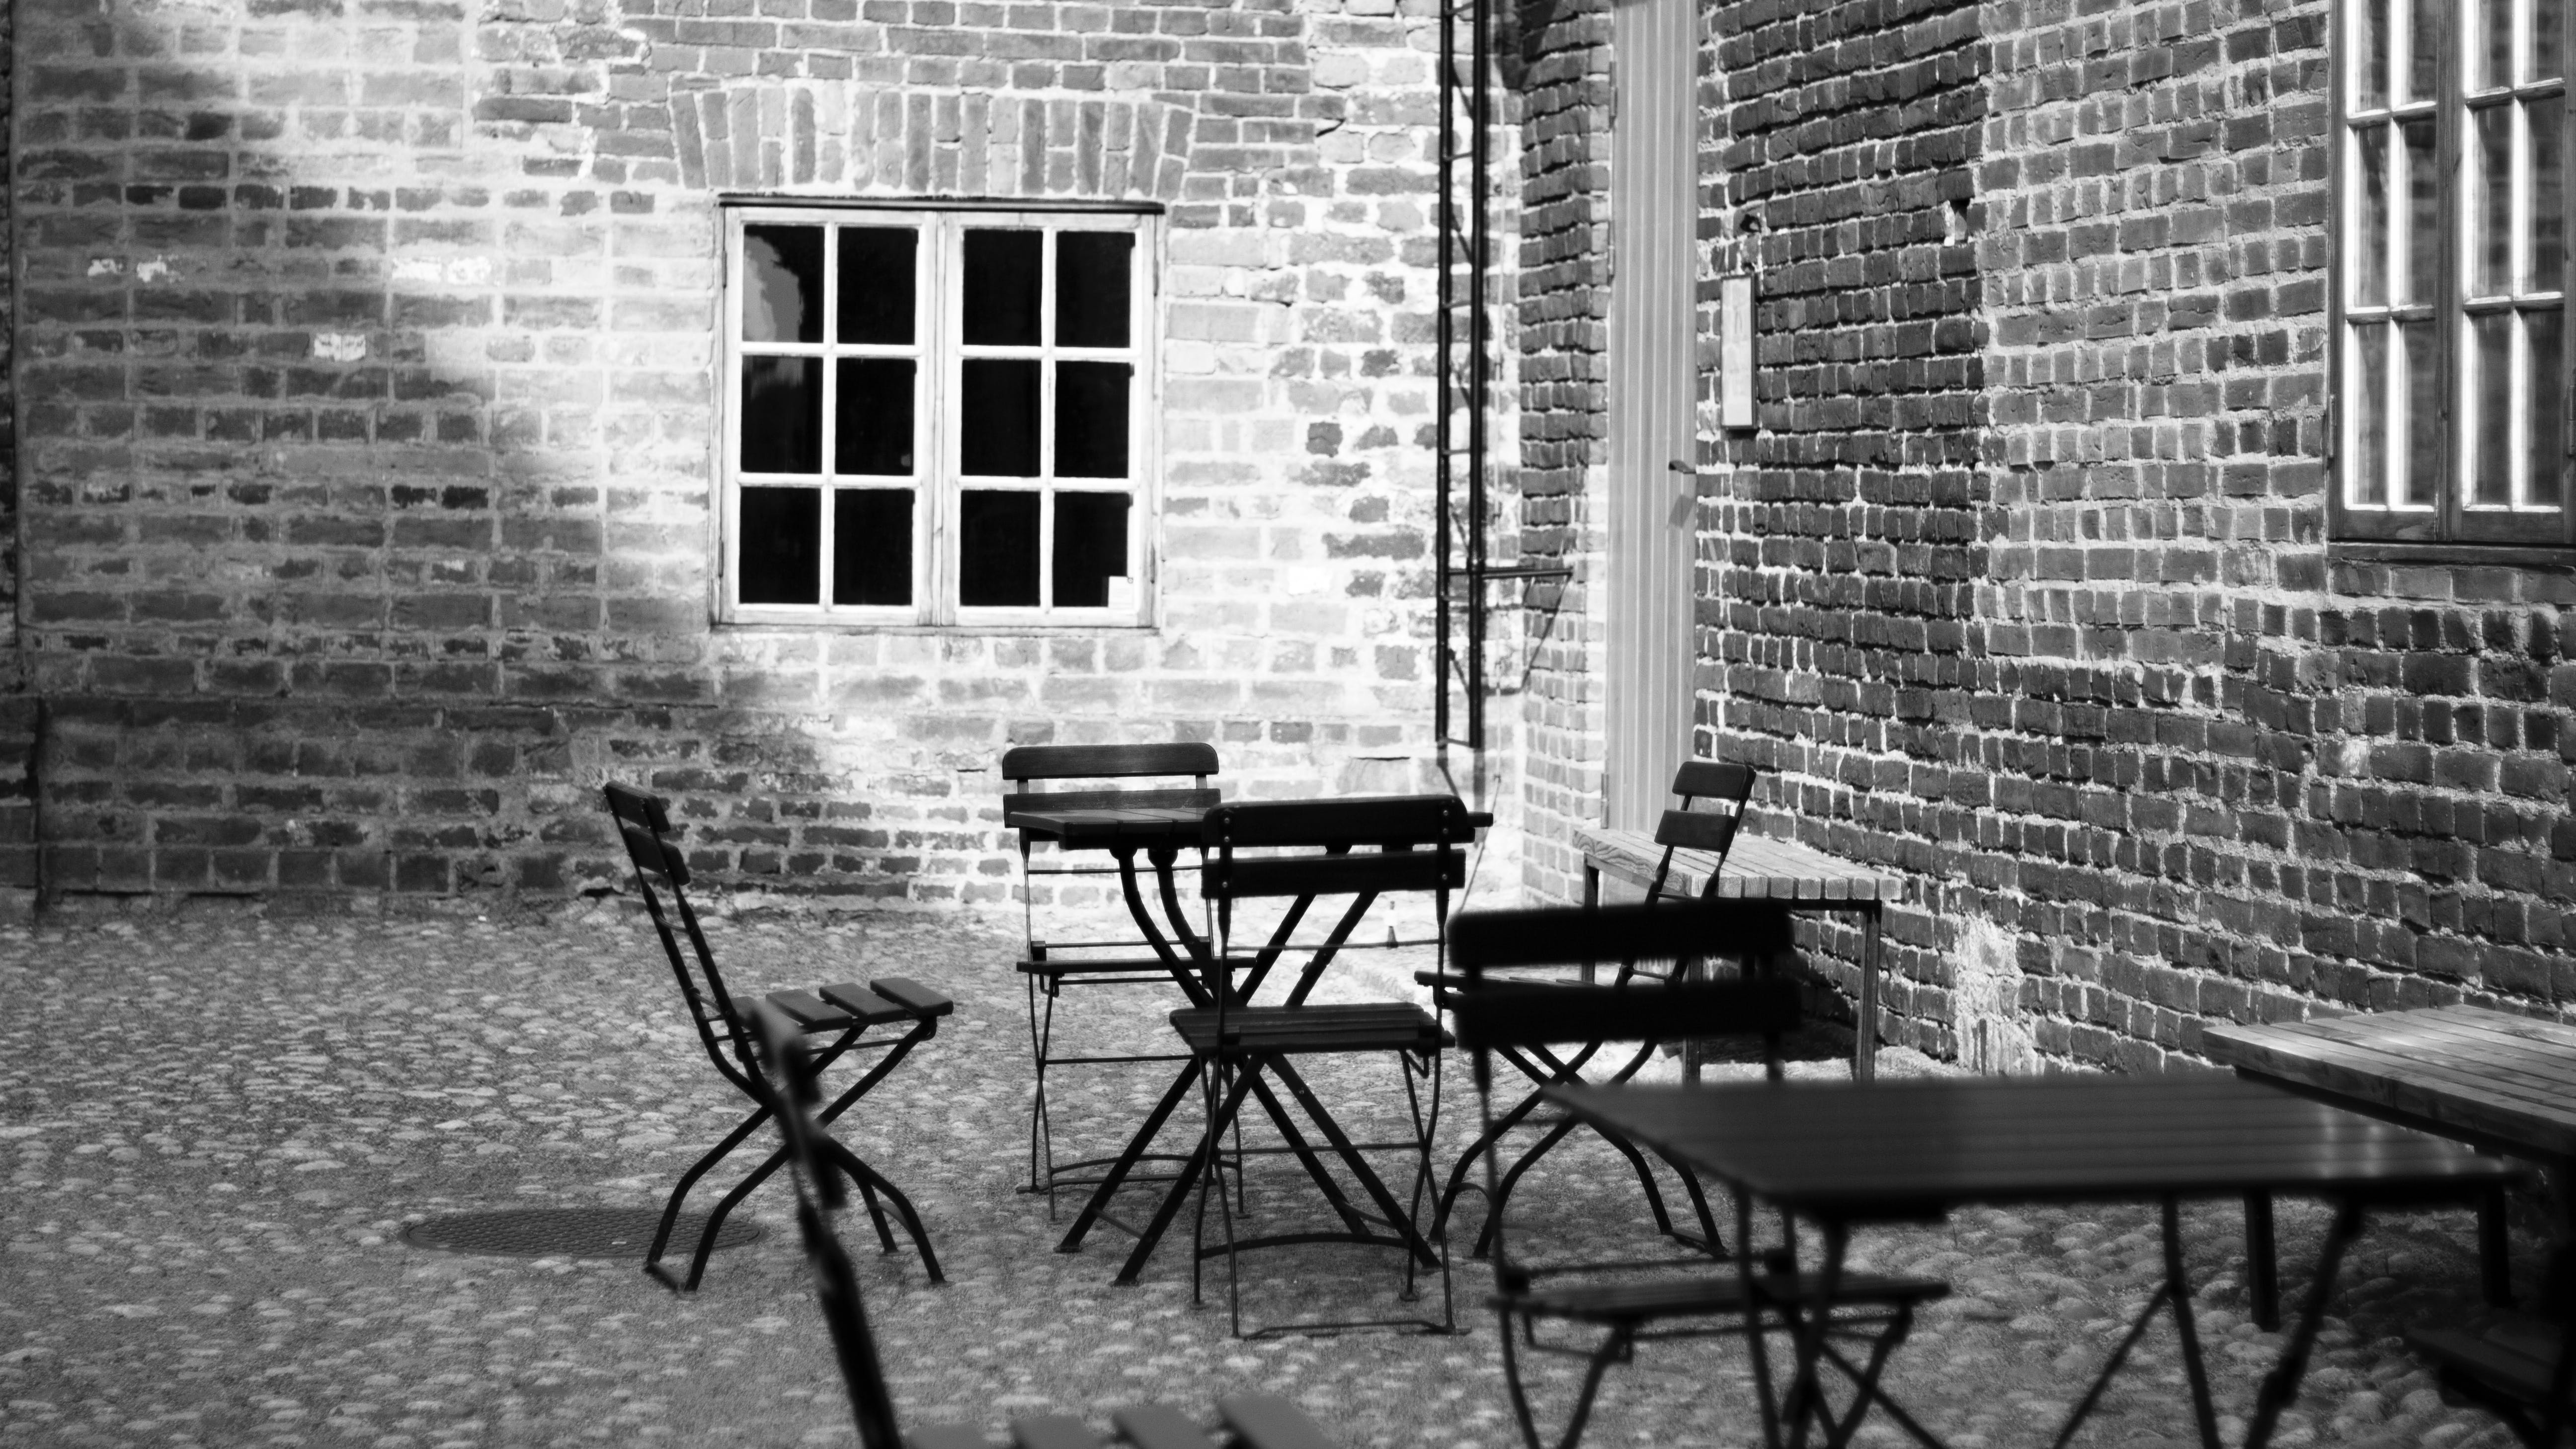 Grayscale Photo of 4-piece Dining Set Near Concrete Building